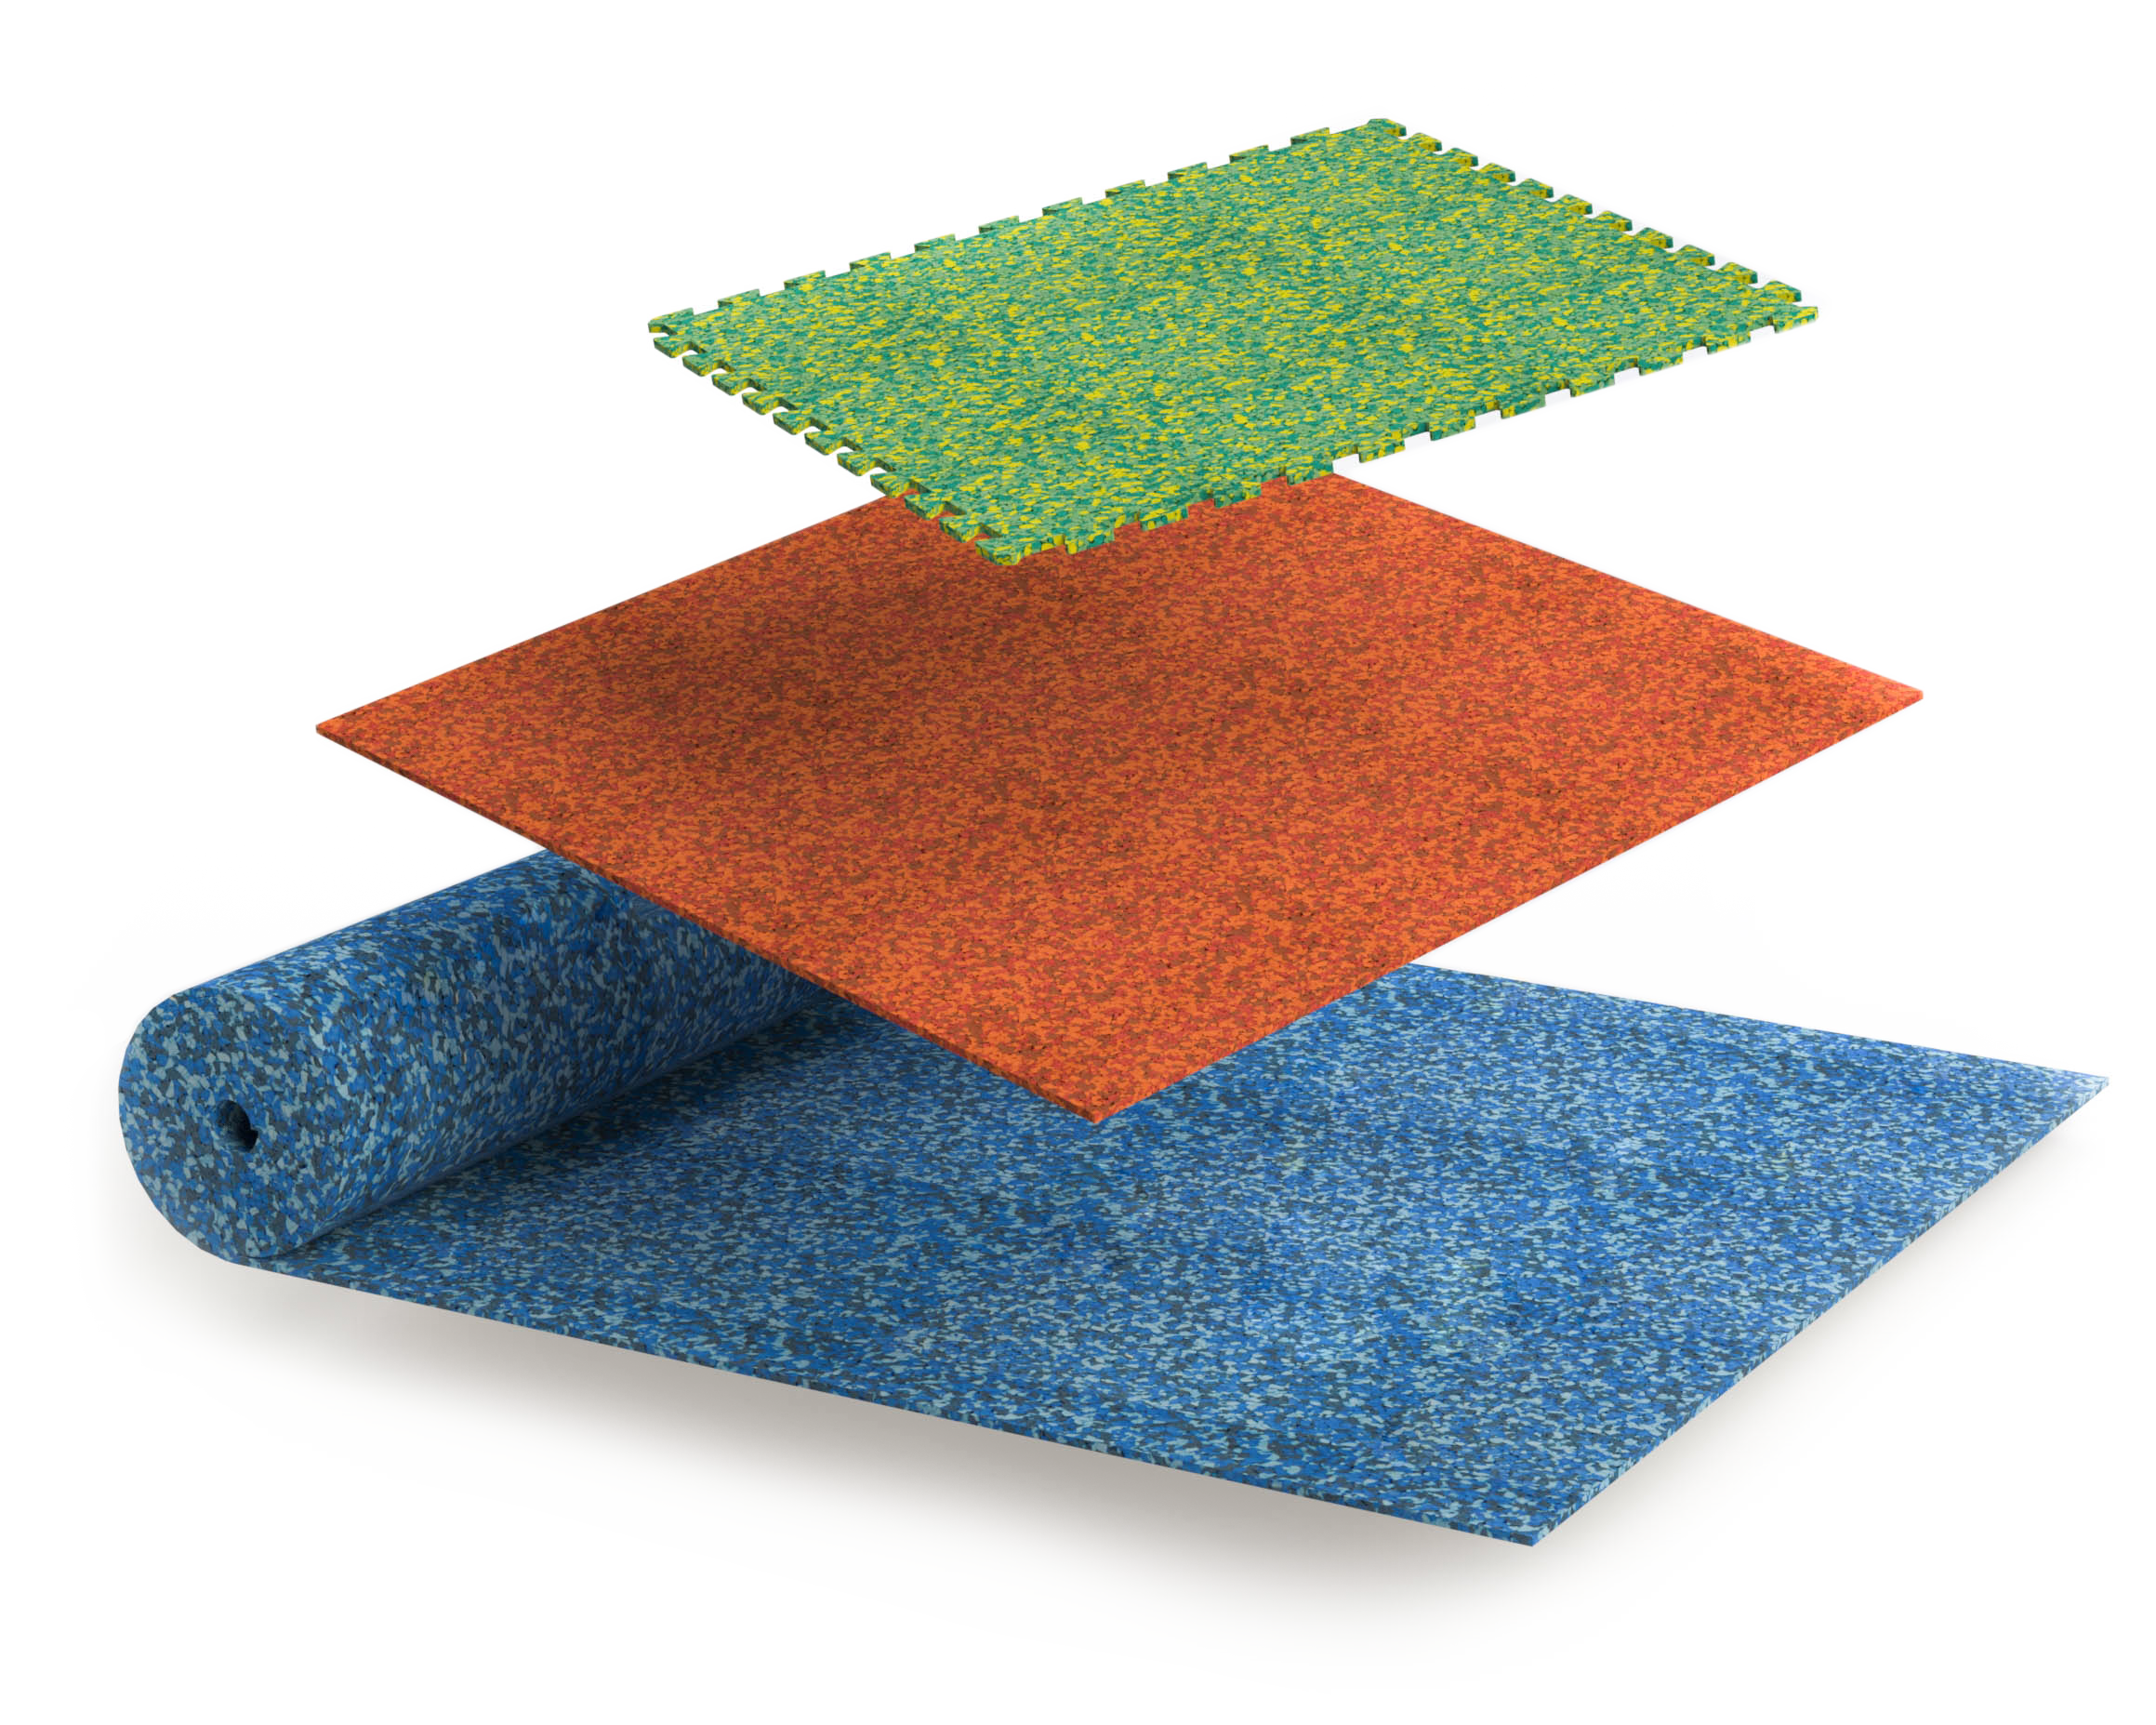 Pliteq TREAD Grip and TREAD Cushion in tile, puzzle and roll good format comes in various customizable colour options